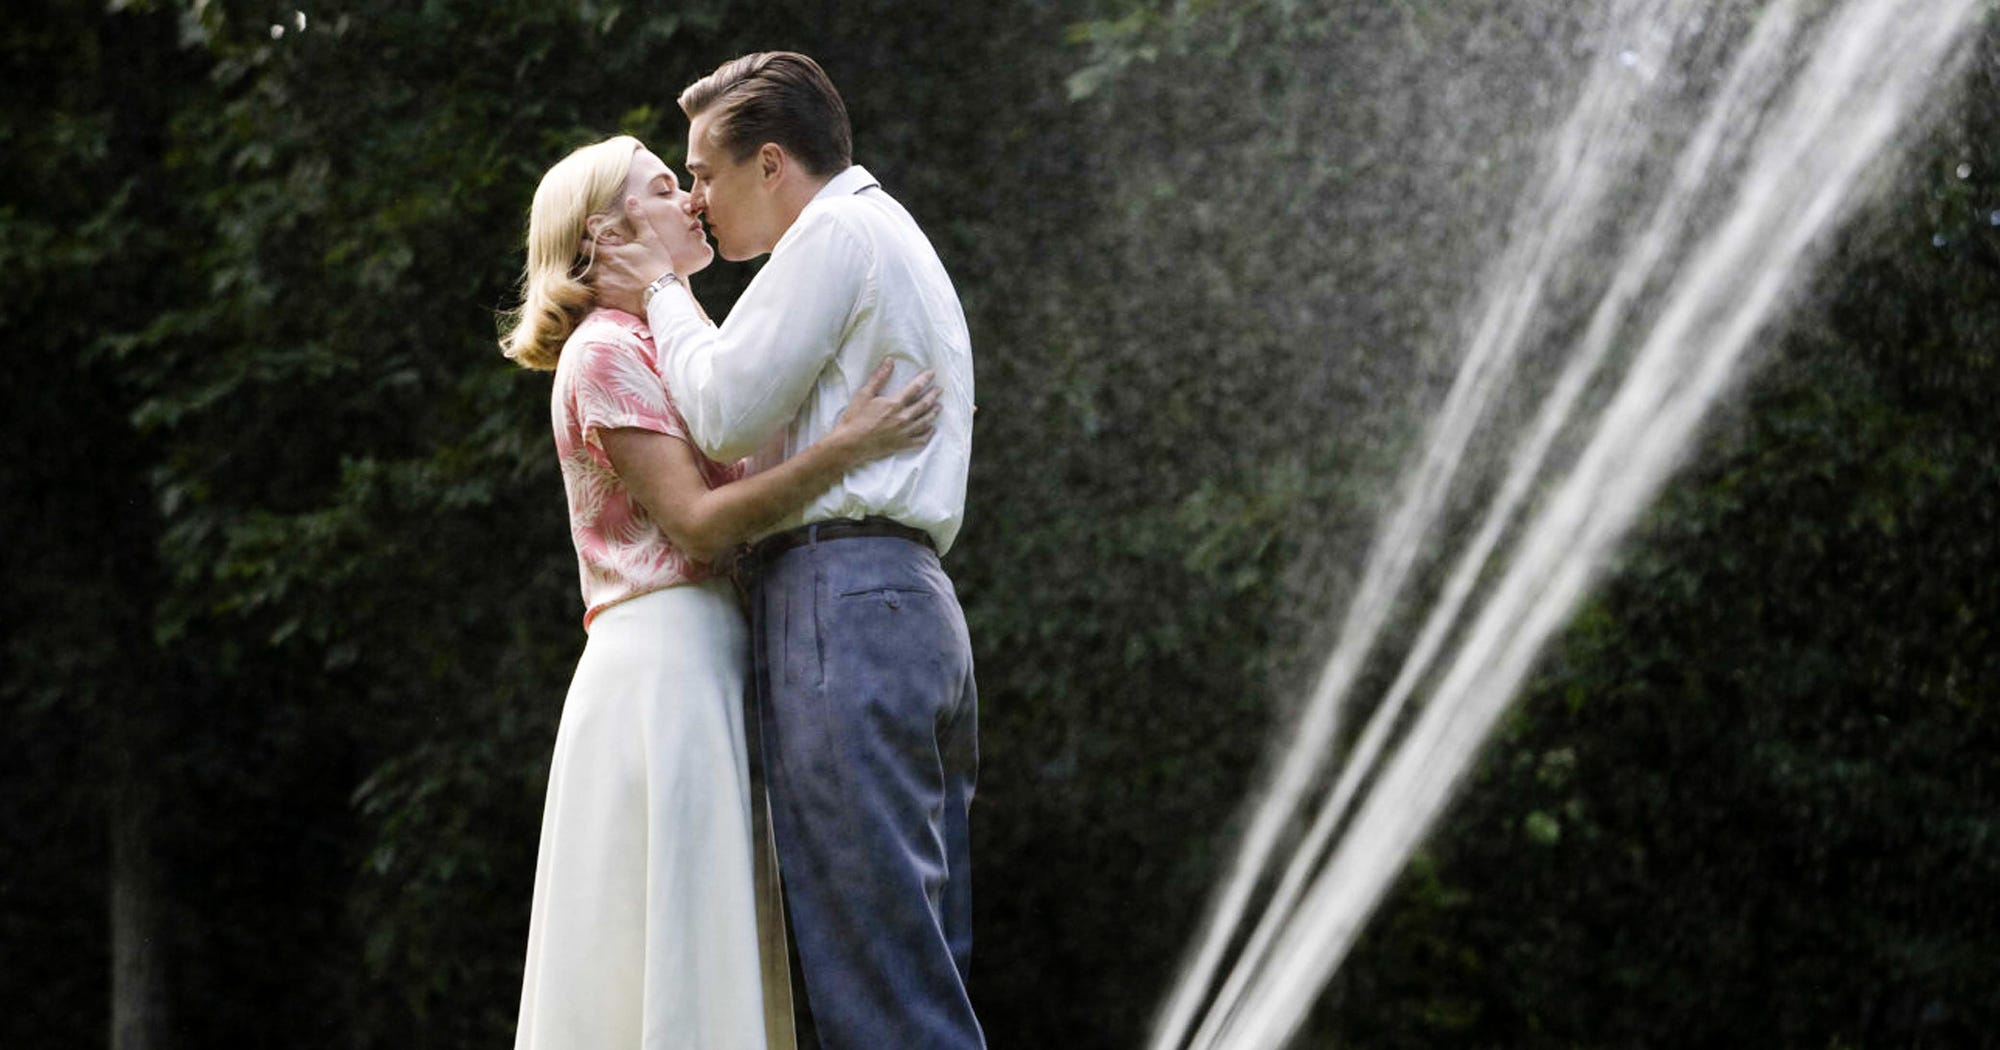 Wedding Movies To Watch Before You Get Married